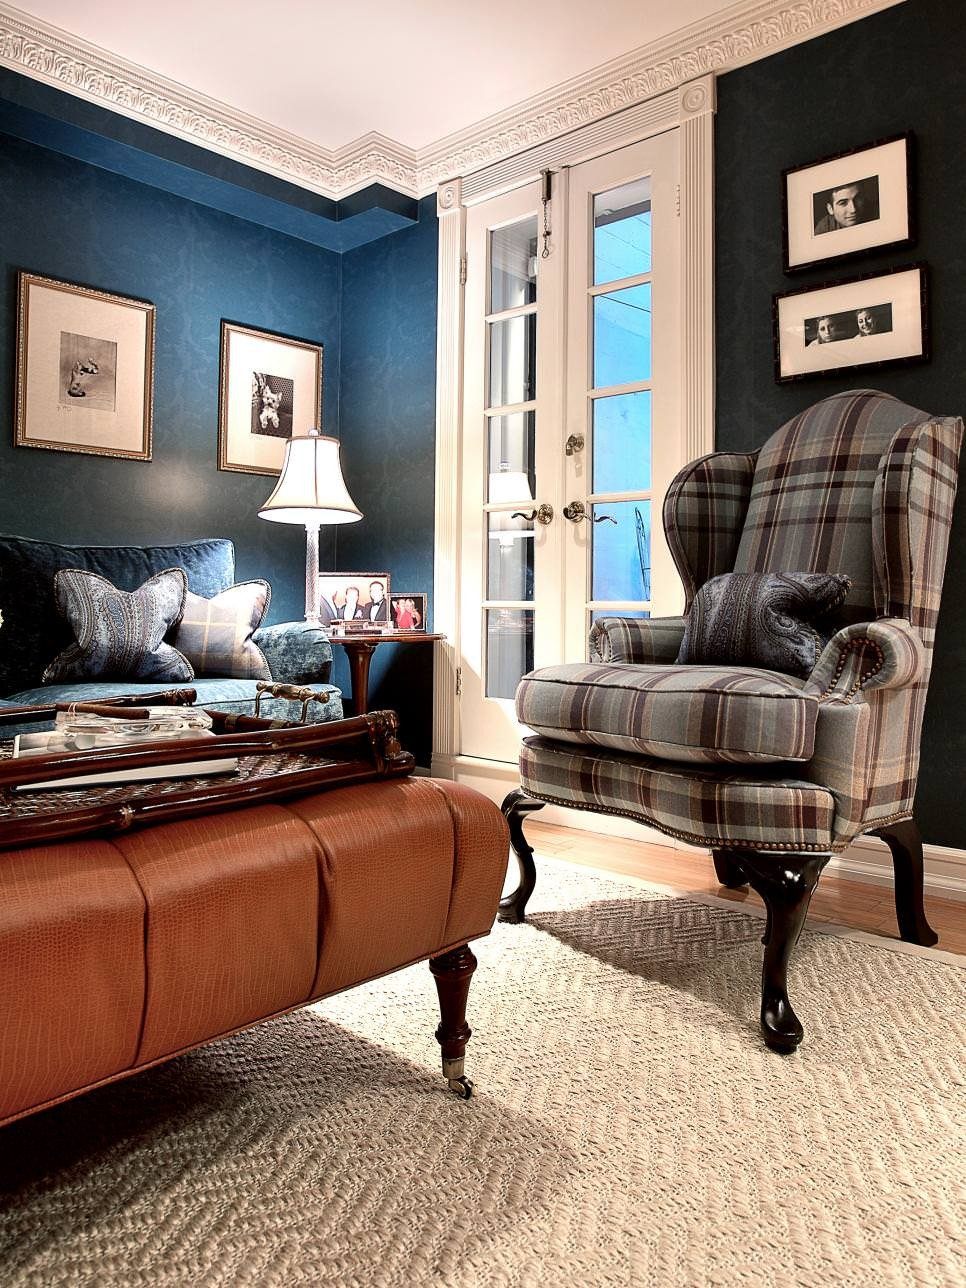 Brown Living Room Ideas Elegant 20 Blue and Brown Living Room Designs Decorating Ideas